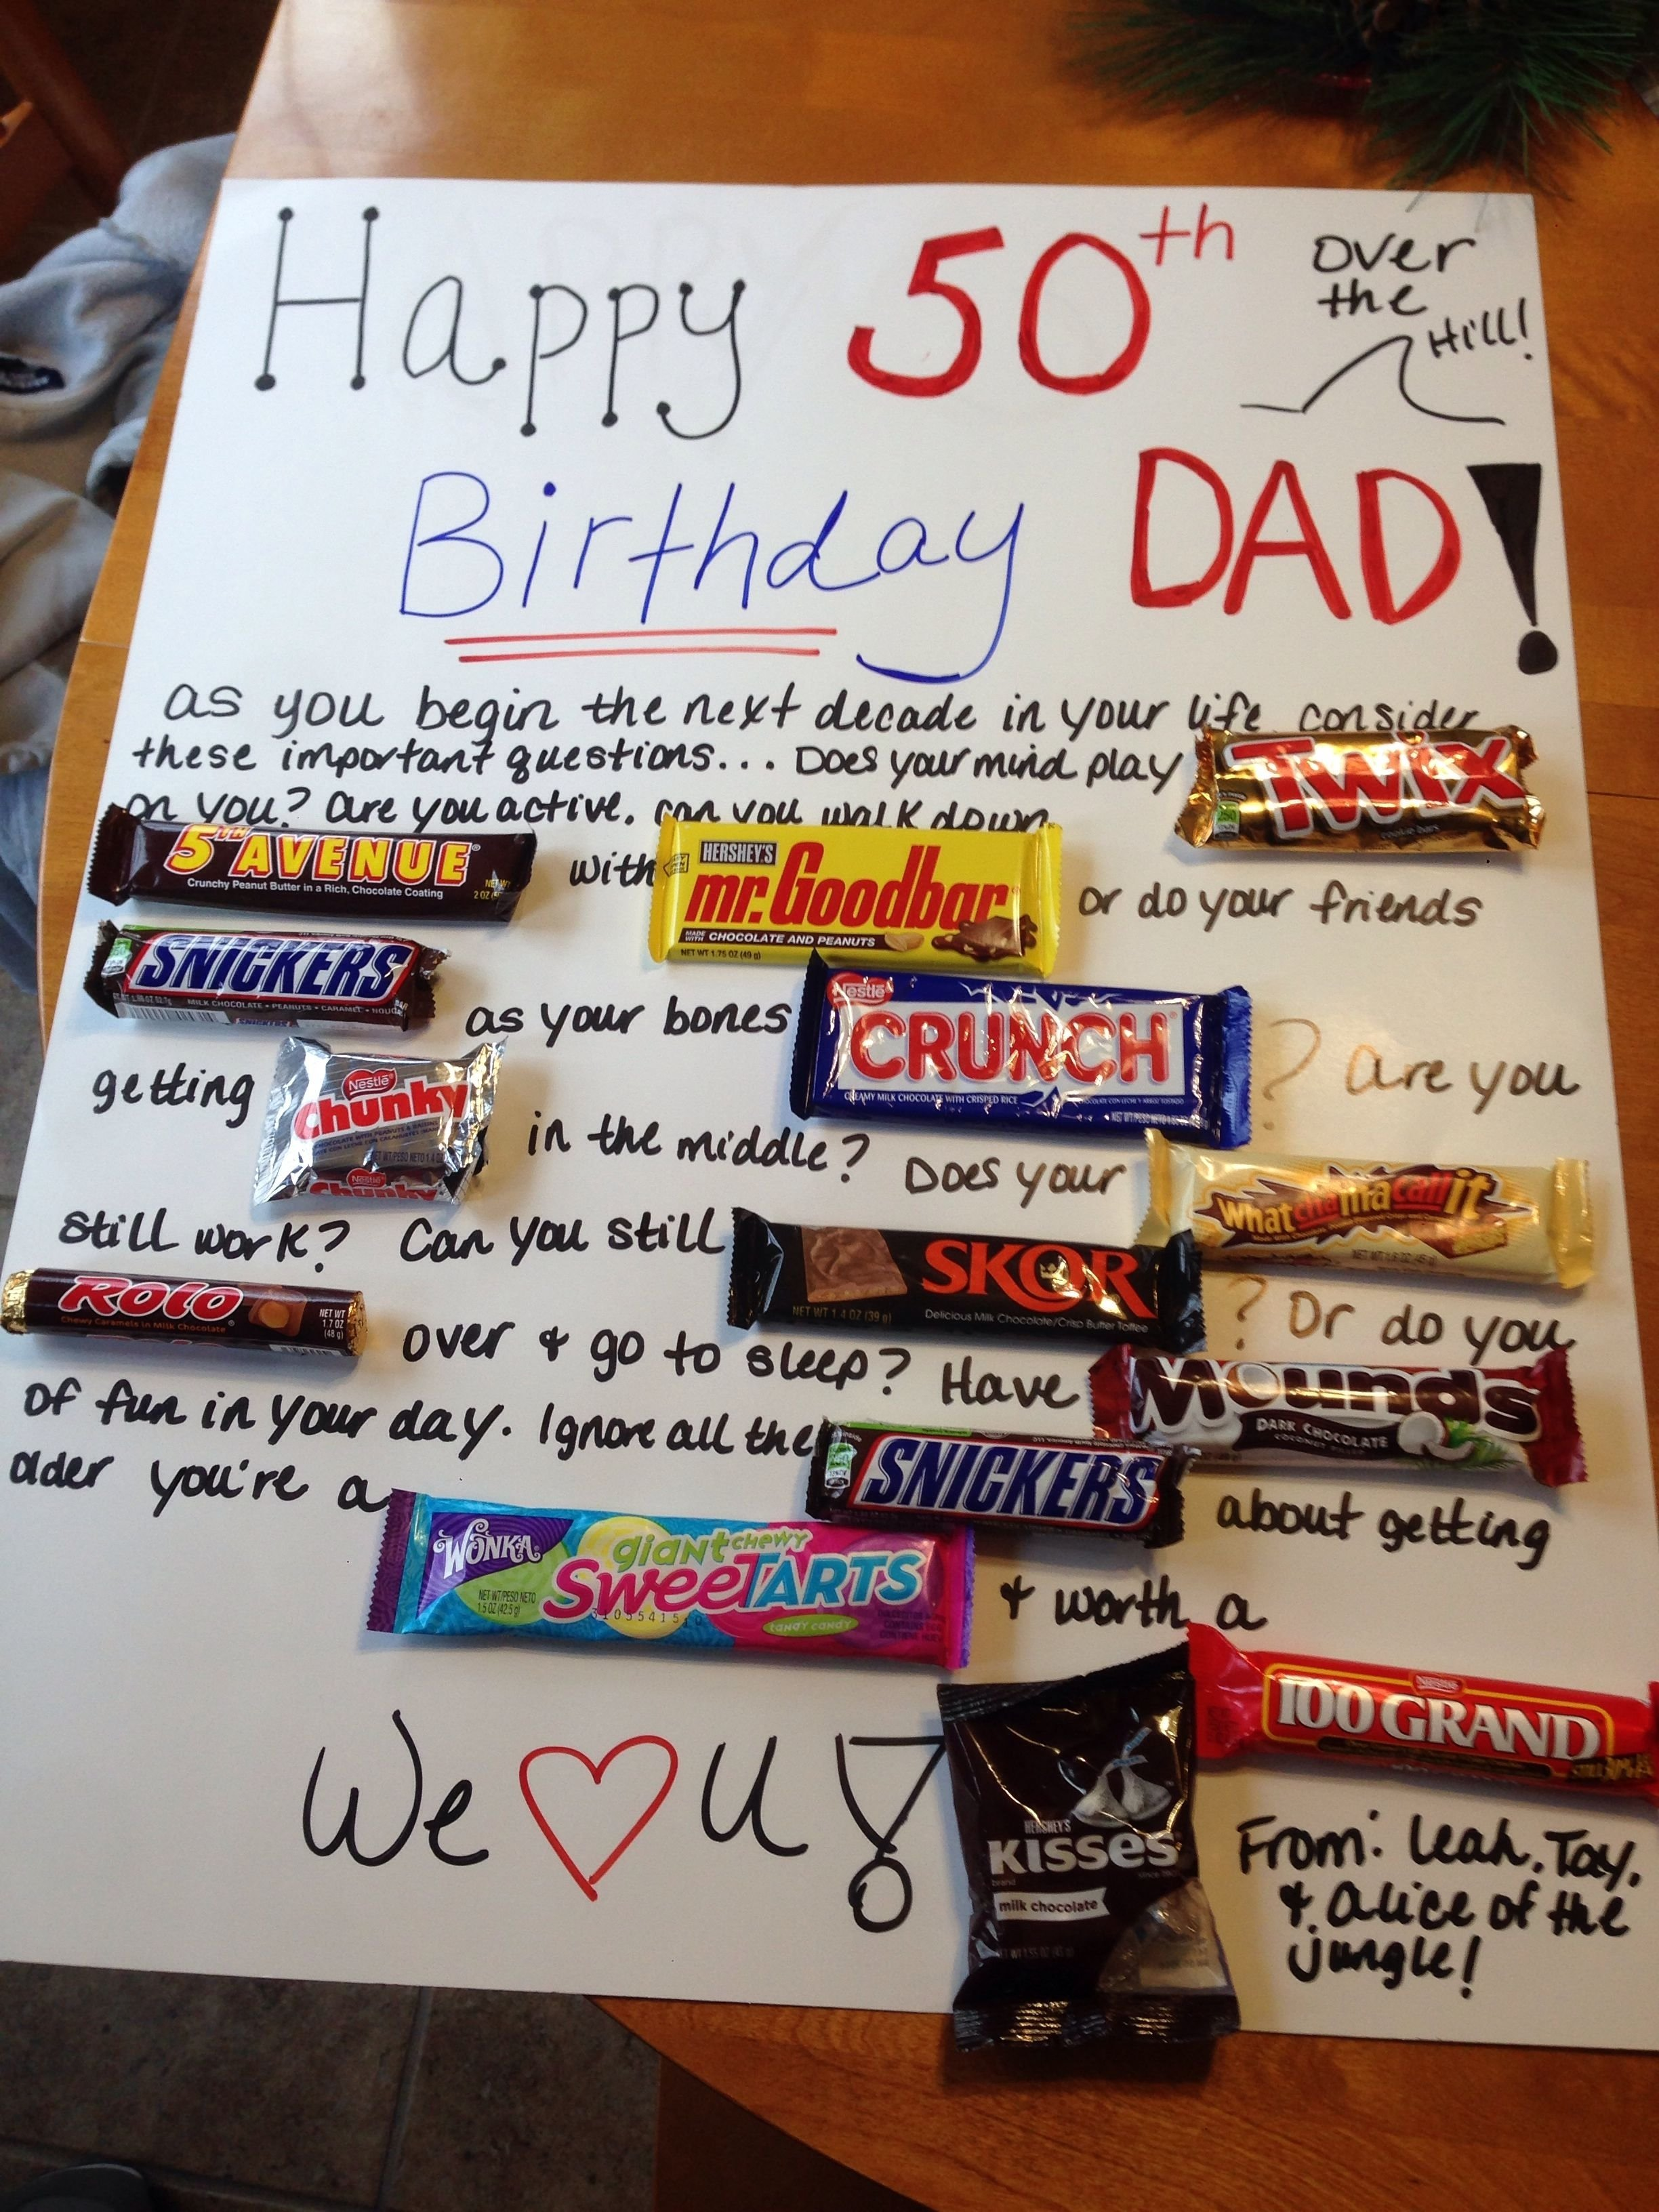 10 Wonderful Gift Card Ideas For Men 40th birthday ideas 50th birthday gift ideas for uncle https www 18 2021